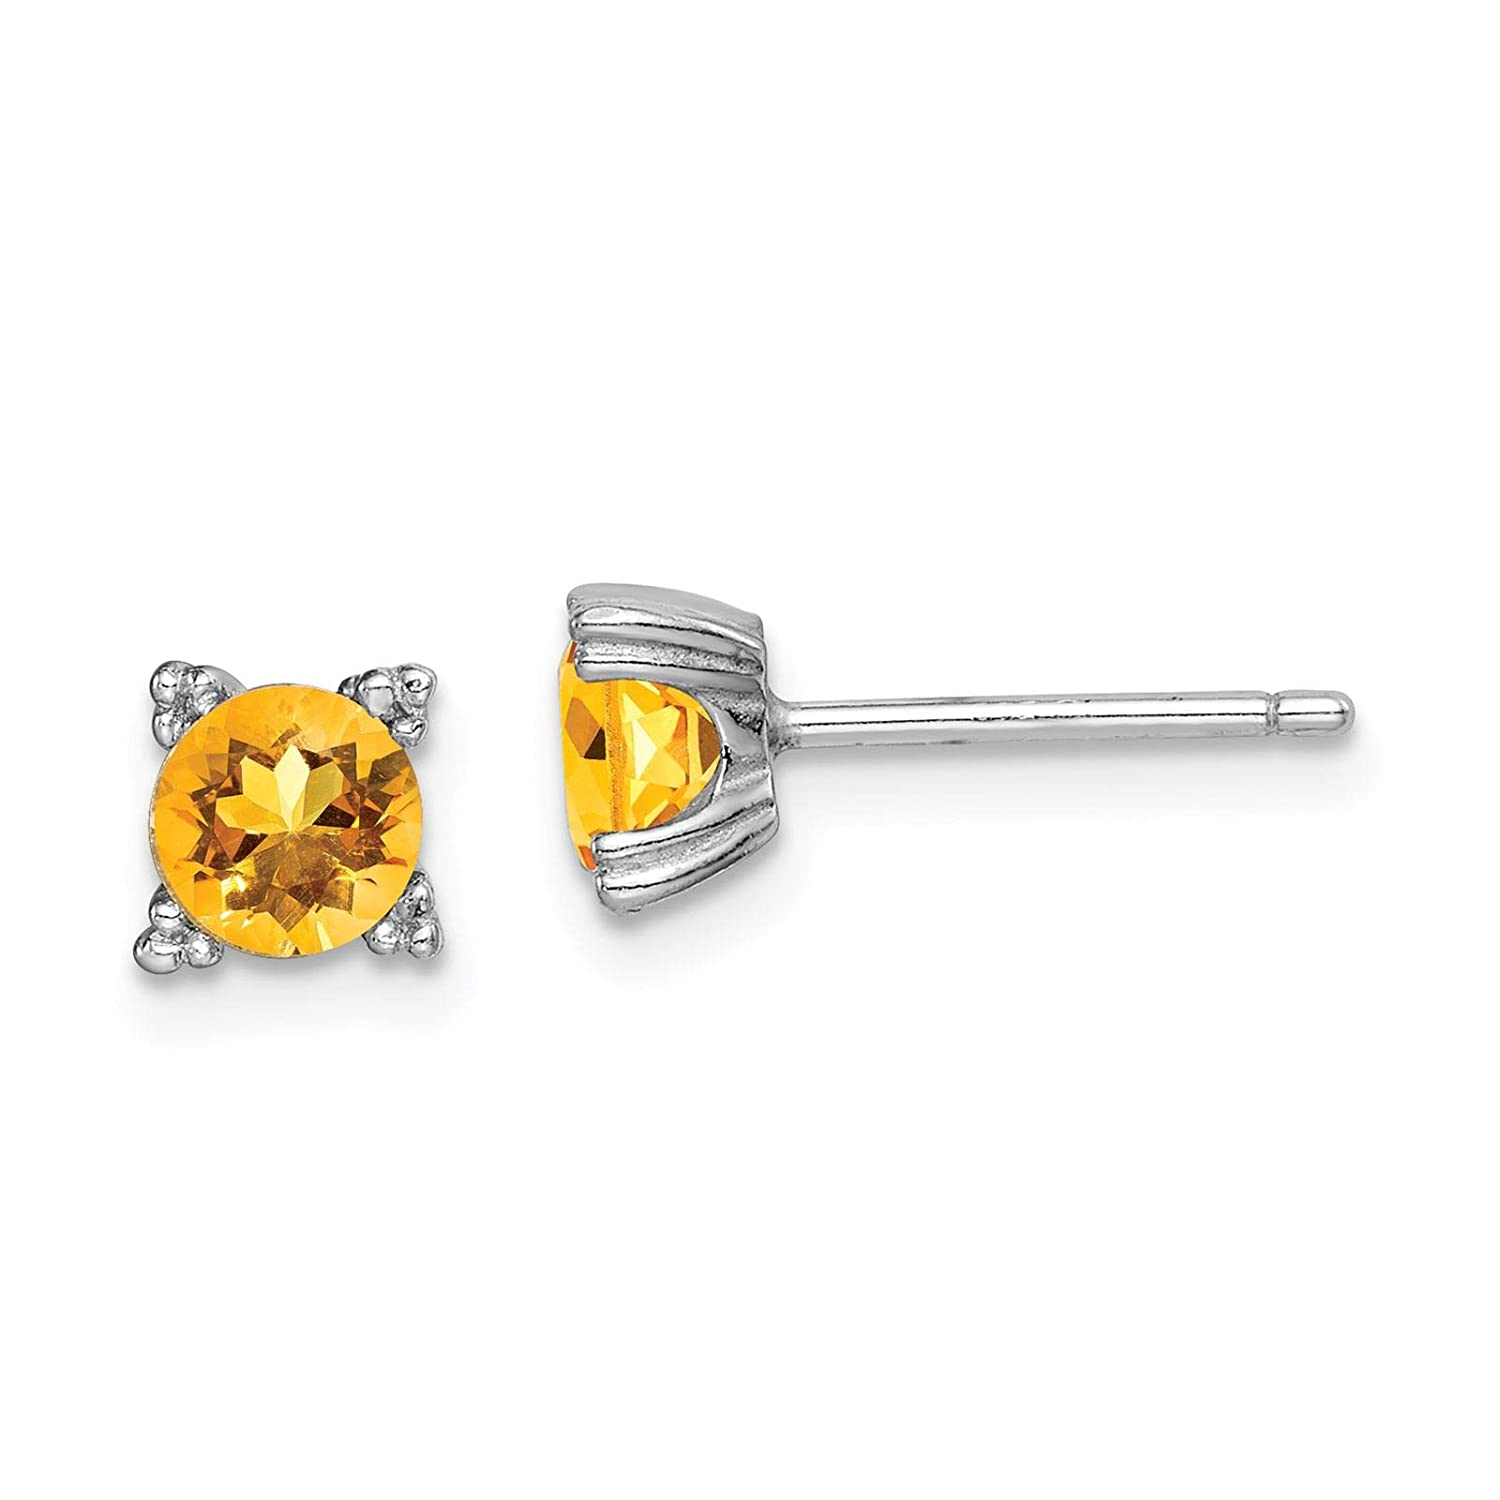 925 Sterling Silver Rhodium-plated Polished Round 5mm Citrine Stud Post Earrings